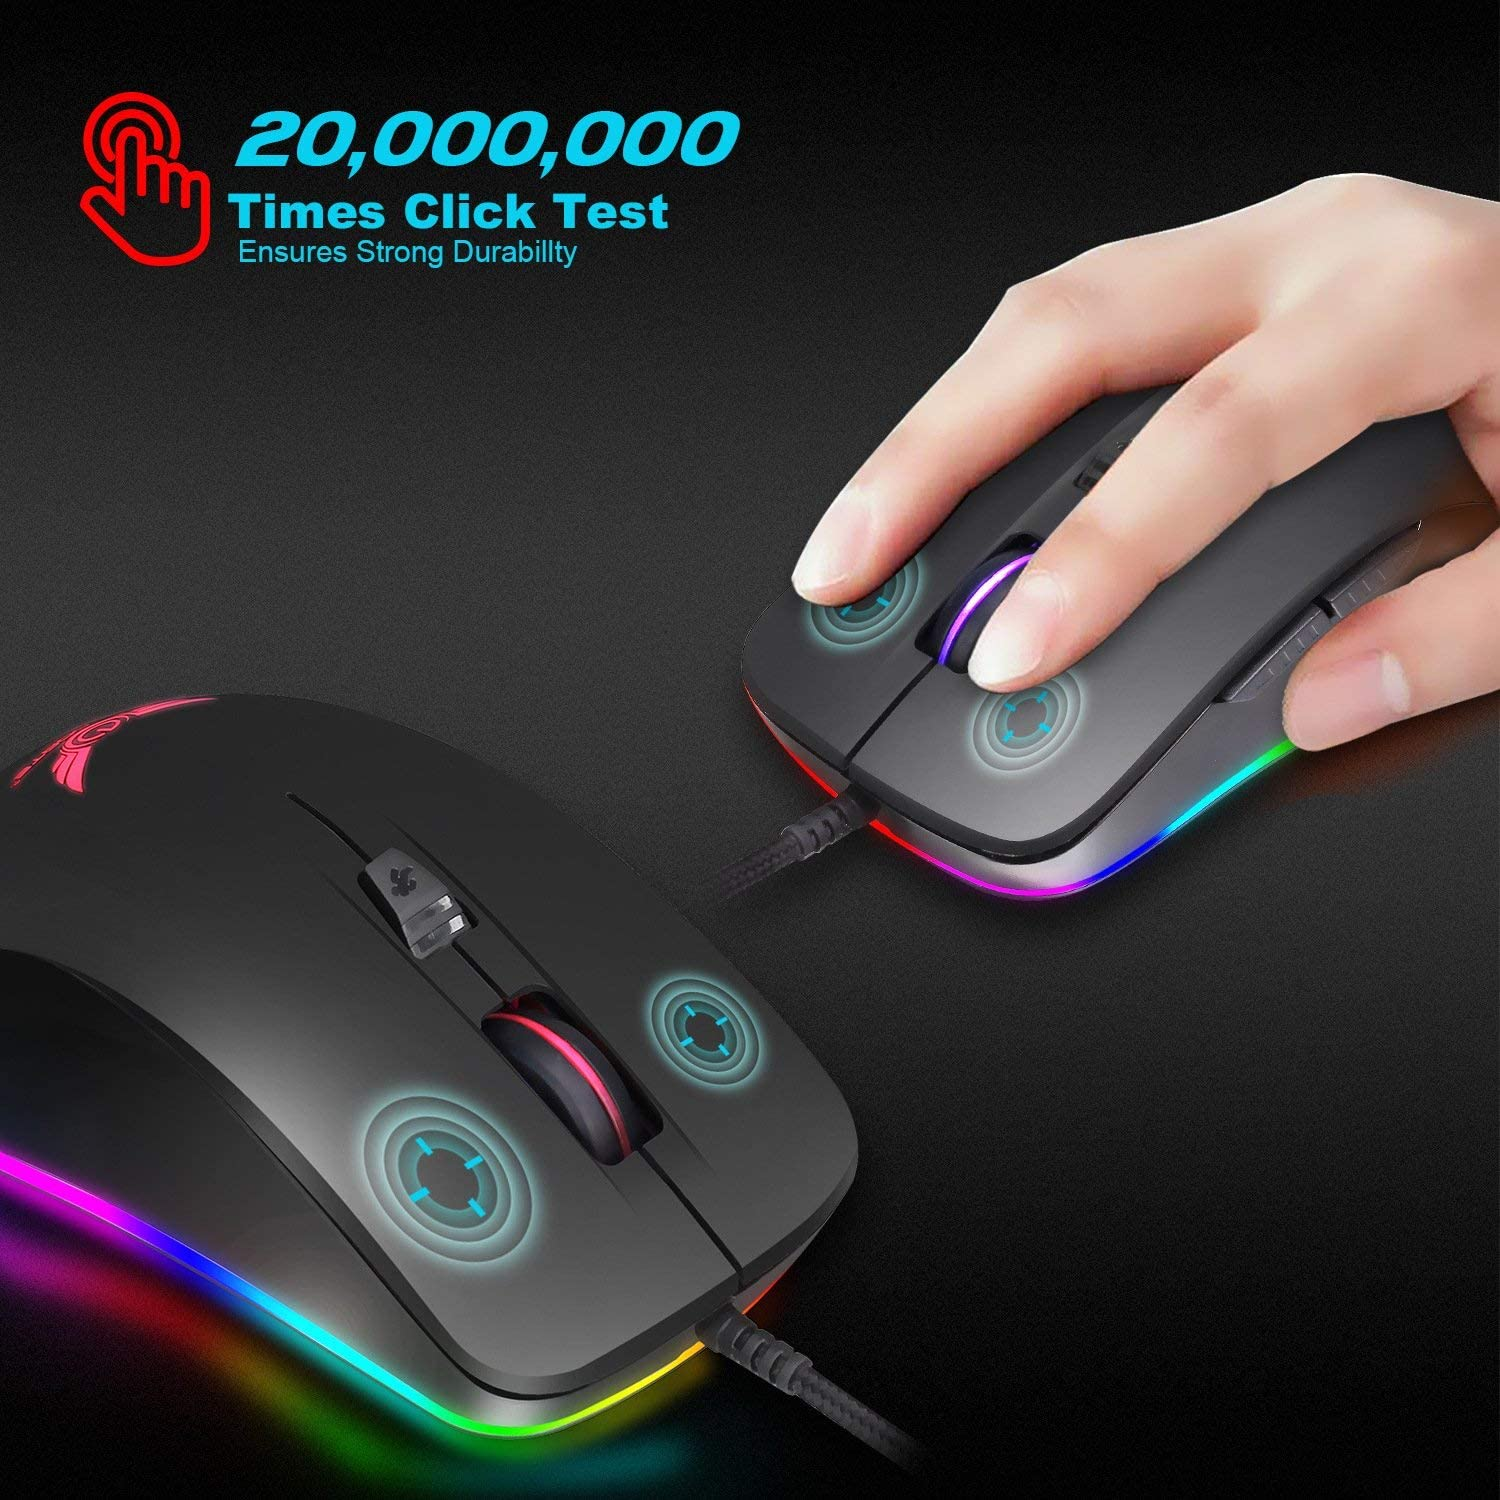 6 Buttons Black Optical Gaming Mouse Wired Ergonomic Mice with Setting DPI Show Time:Gaming Mouse Extra Weight for PC Laptop Desktop Notebook